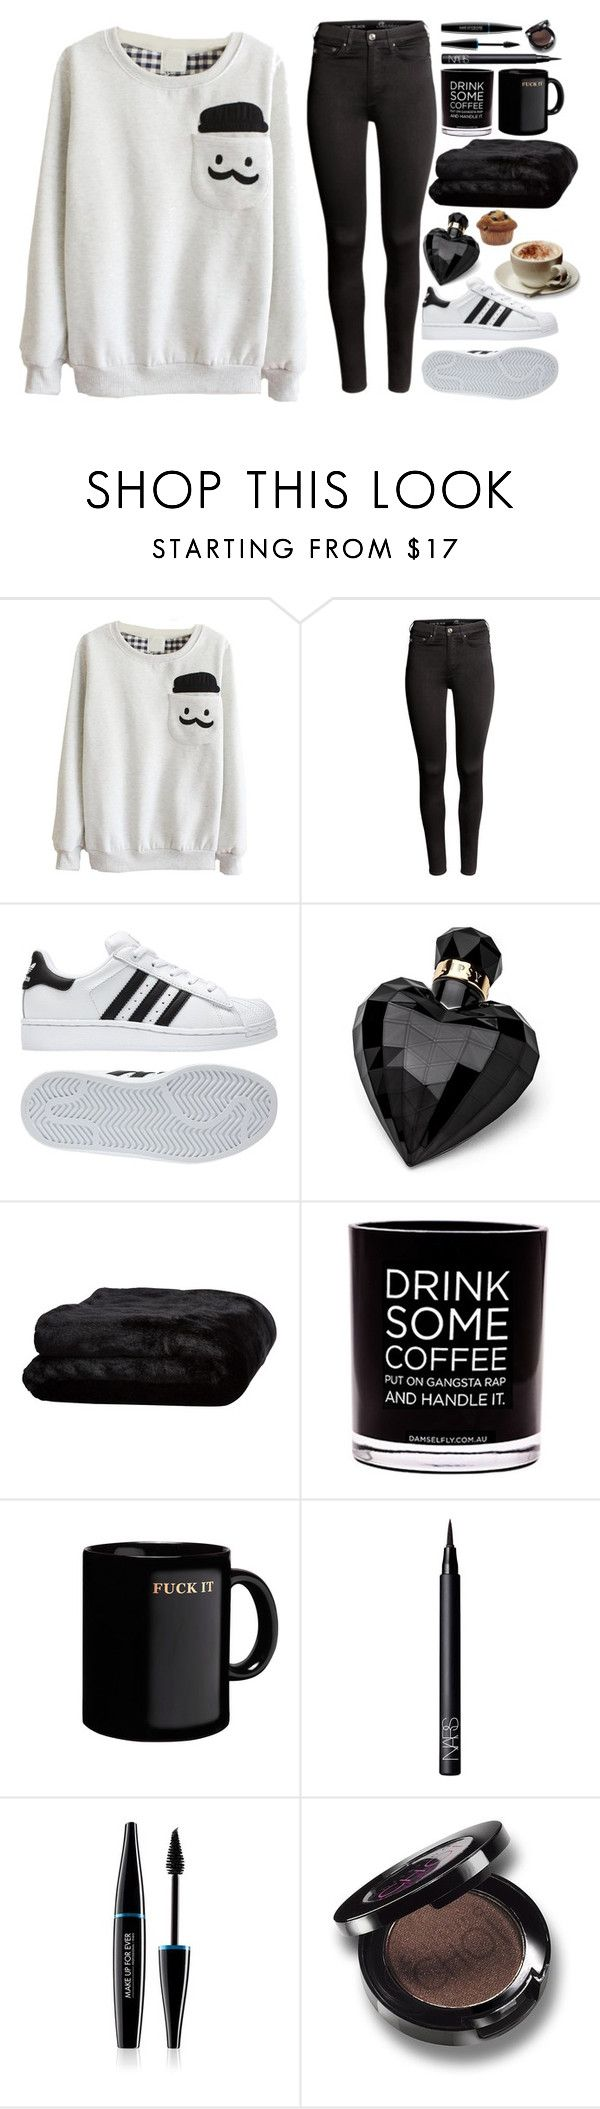 """""""Marshmellow"""" by silent-sorrow ❤ liked on Polyvore featuring H&M, adidas, Lipsy, Olivier Desforges, Damselfly Candles, NARS Cosmetics and MAKE UP FOR EVER"""